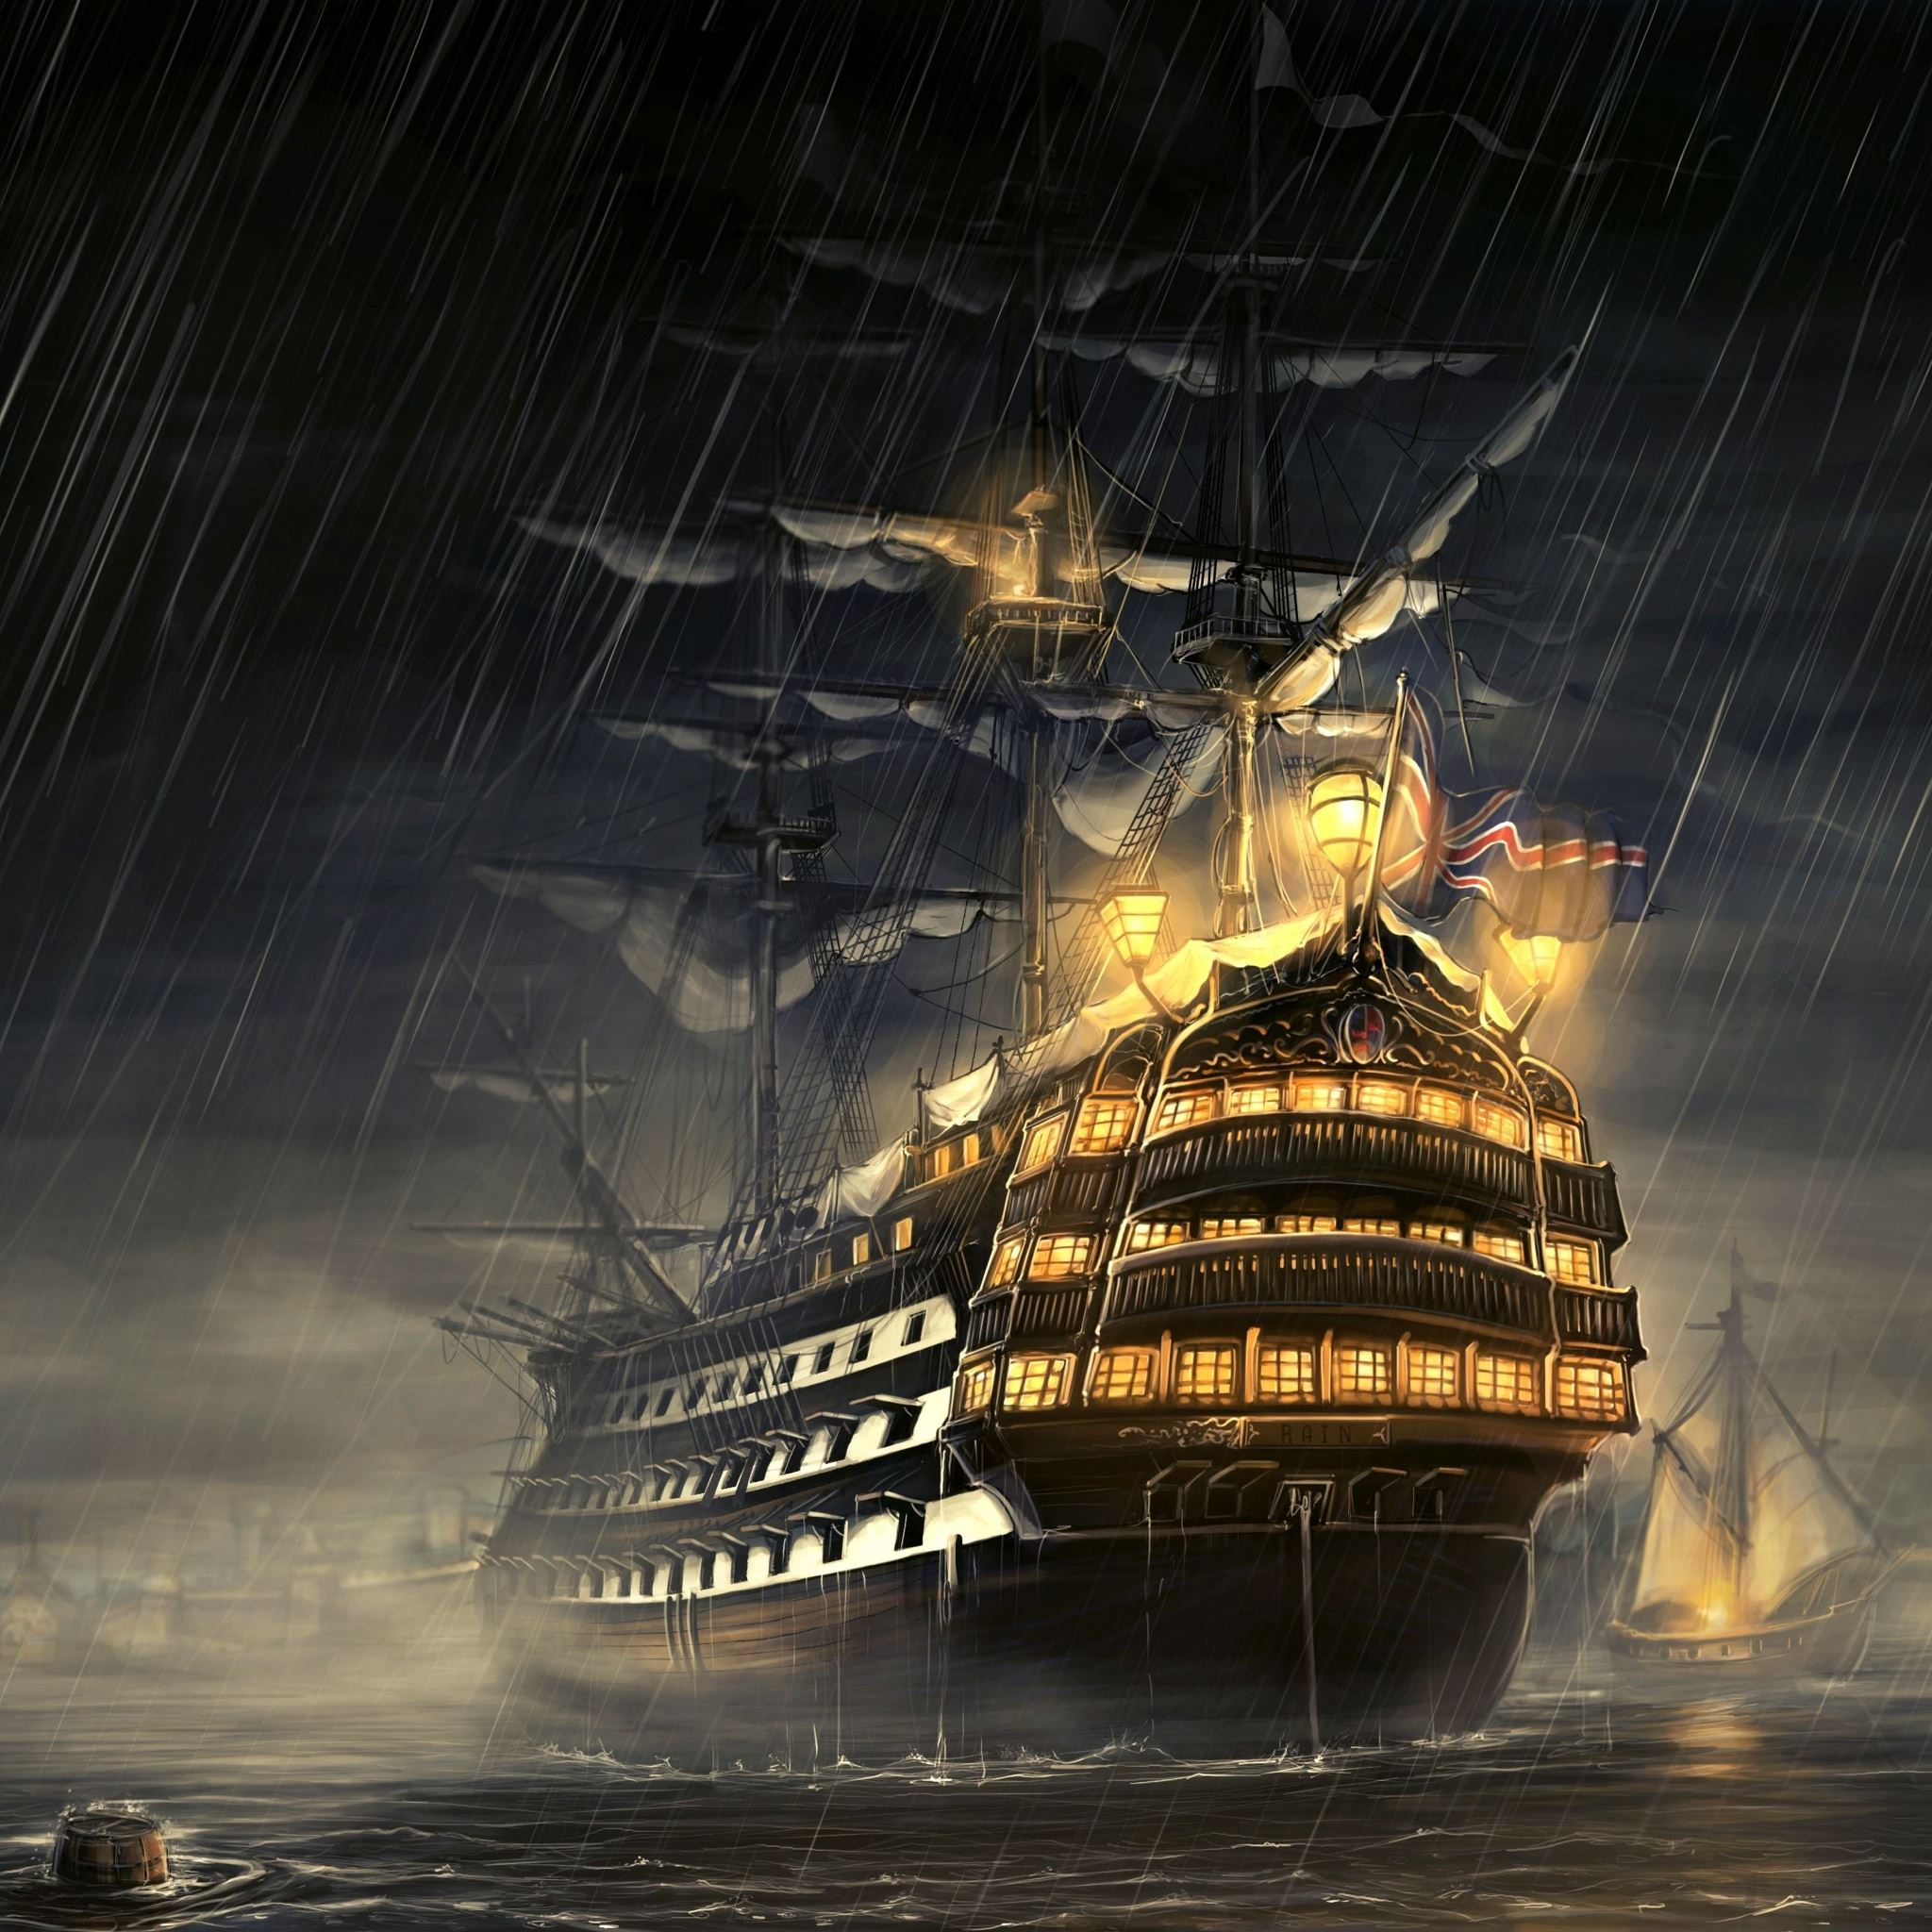 Pirate Ship iPad Air wallpaper